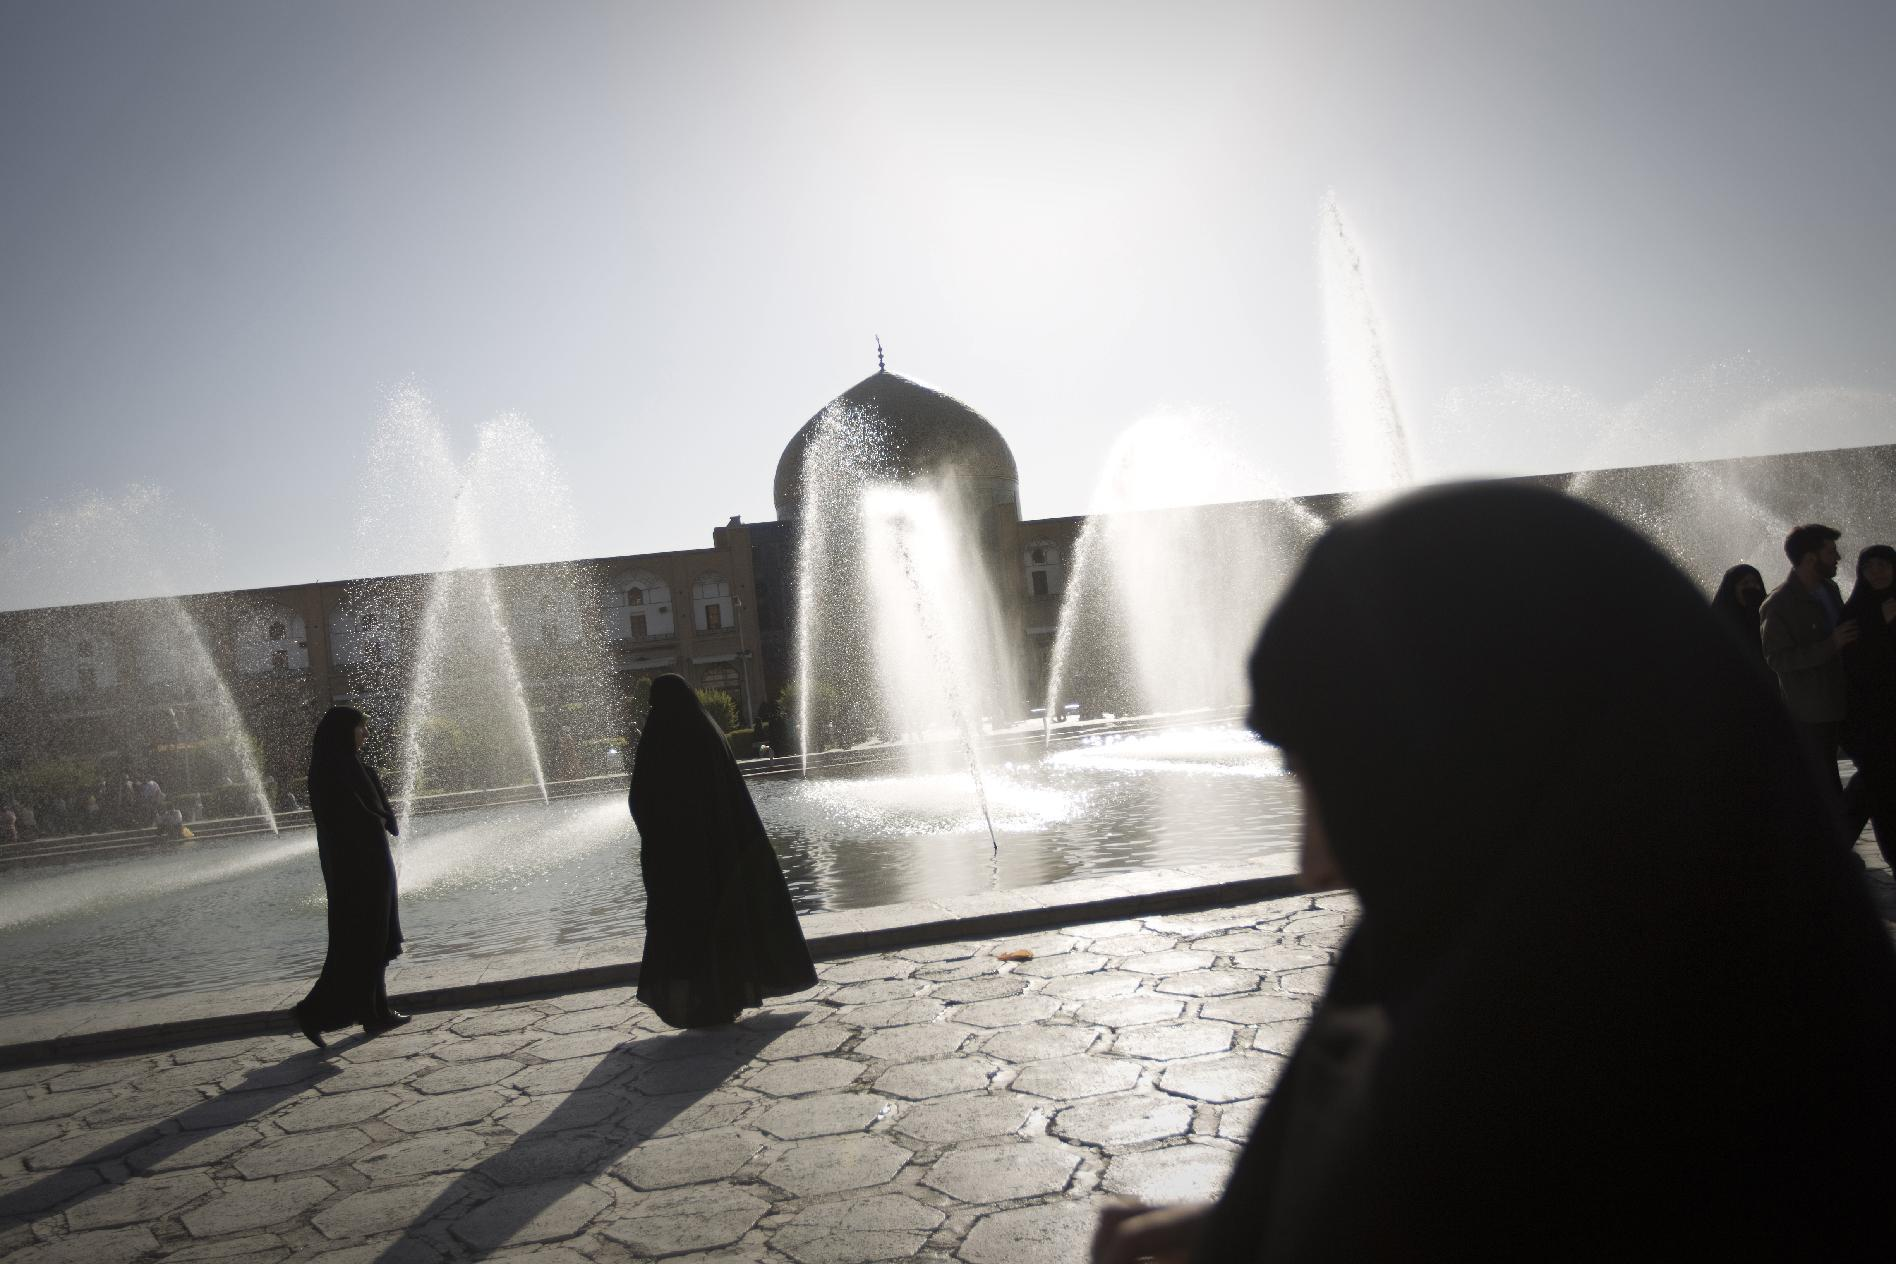 Veiled Iranian women walk past water fountains in the historical Naqsh-e Jahan Square in Isfahan on August 31, 2011